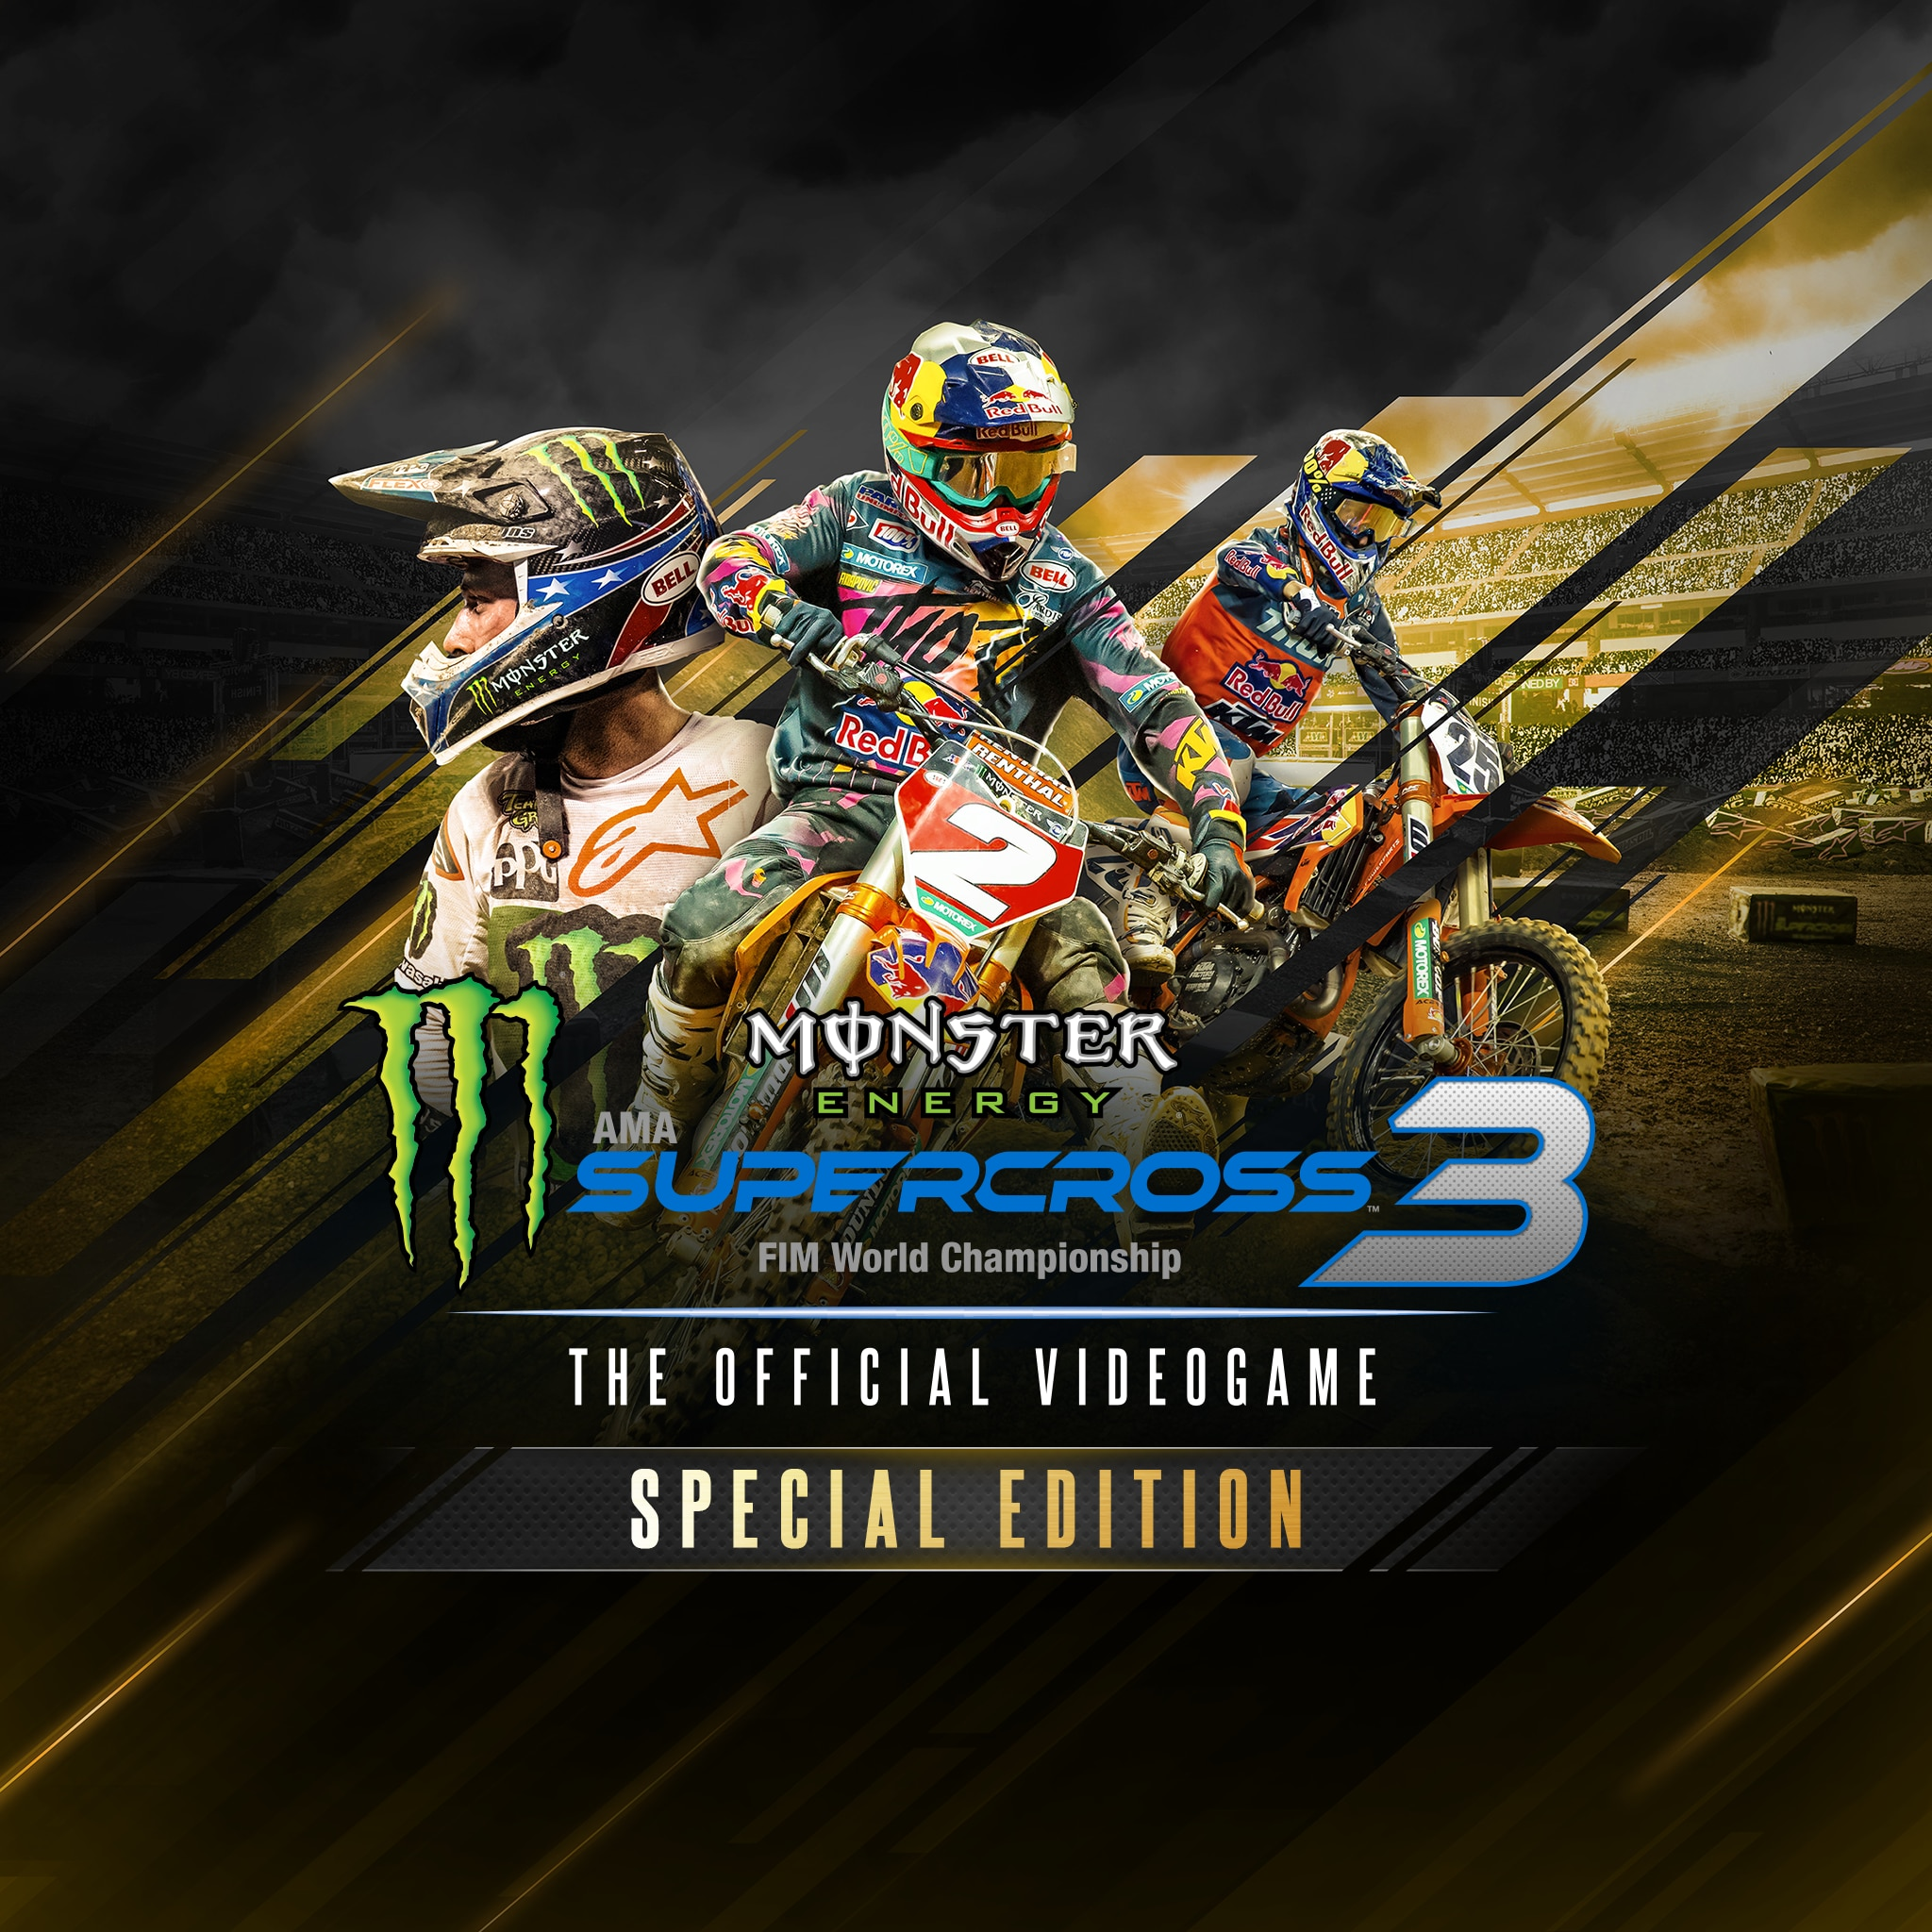 Monster Energy Supercross 3 - Special Edition